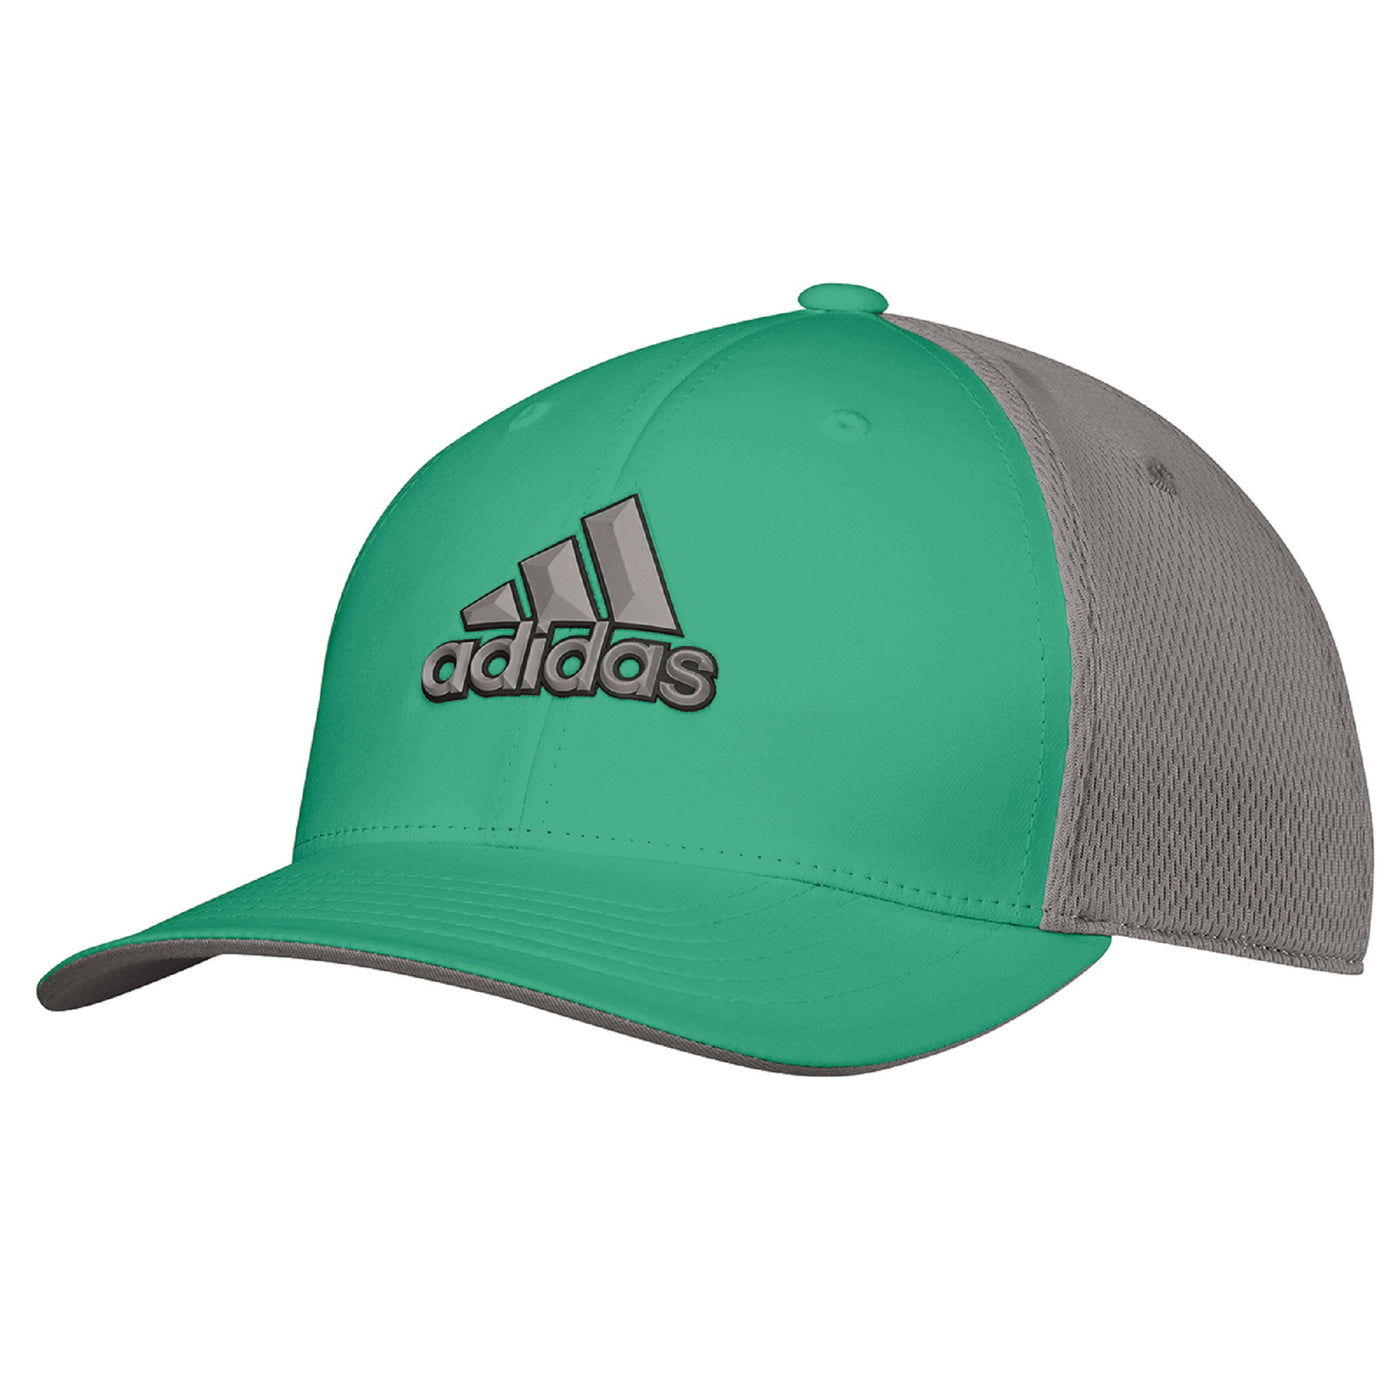 ADIDAS Golf Climacool Tour Cap – Carus Green Online Golf Store 0cafd3b0029